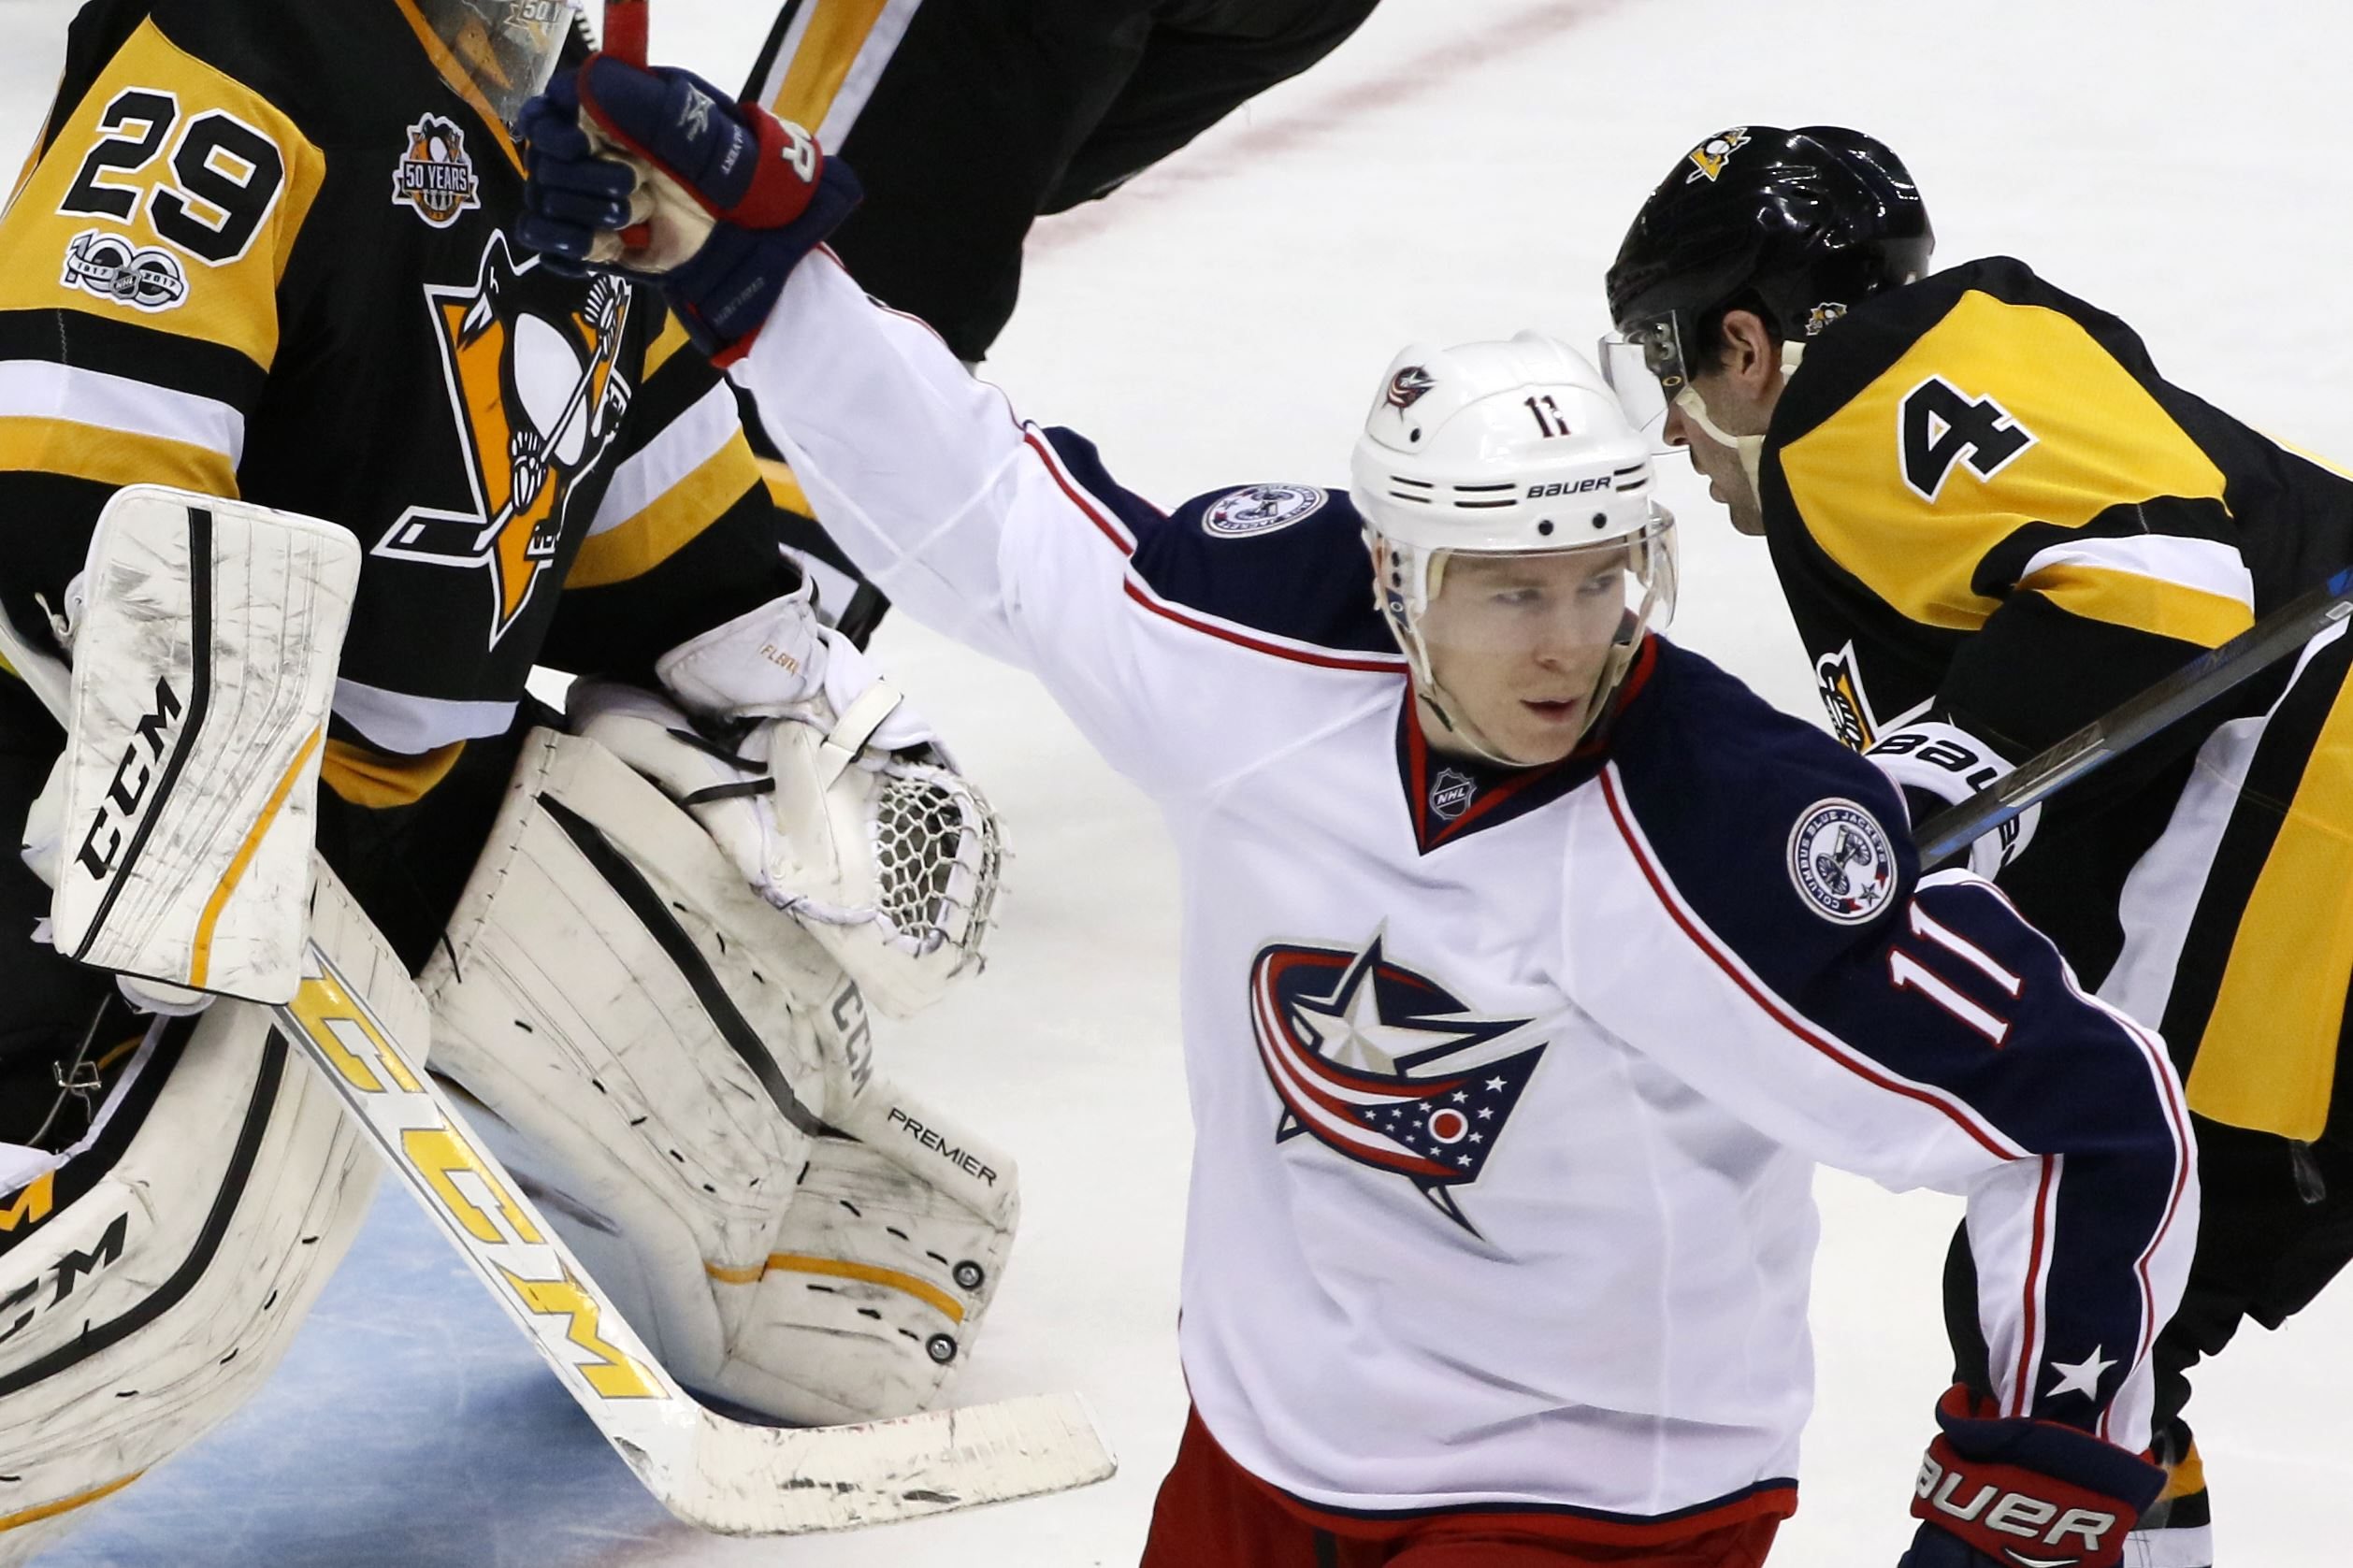 Blue Jackets Penguins Hockey-14 Columbus Blue Jackets&#39 Matt Calvert will have a hearing Saturday for his conduct lFriday's Game 2 on Tom Kuhnhackl of the Penguins